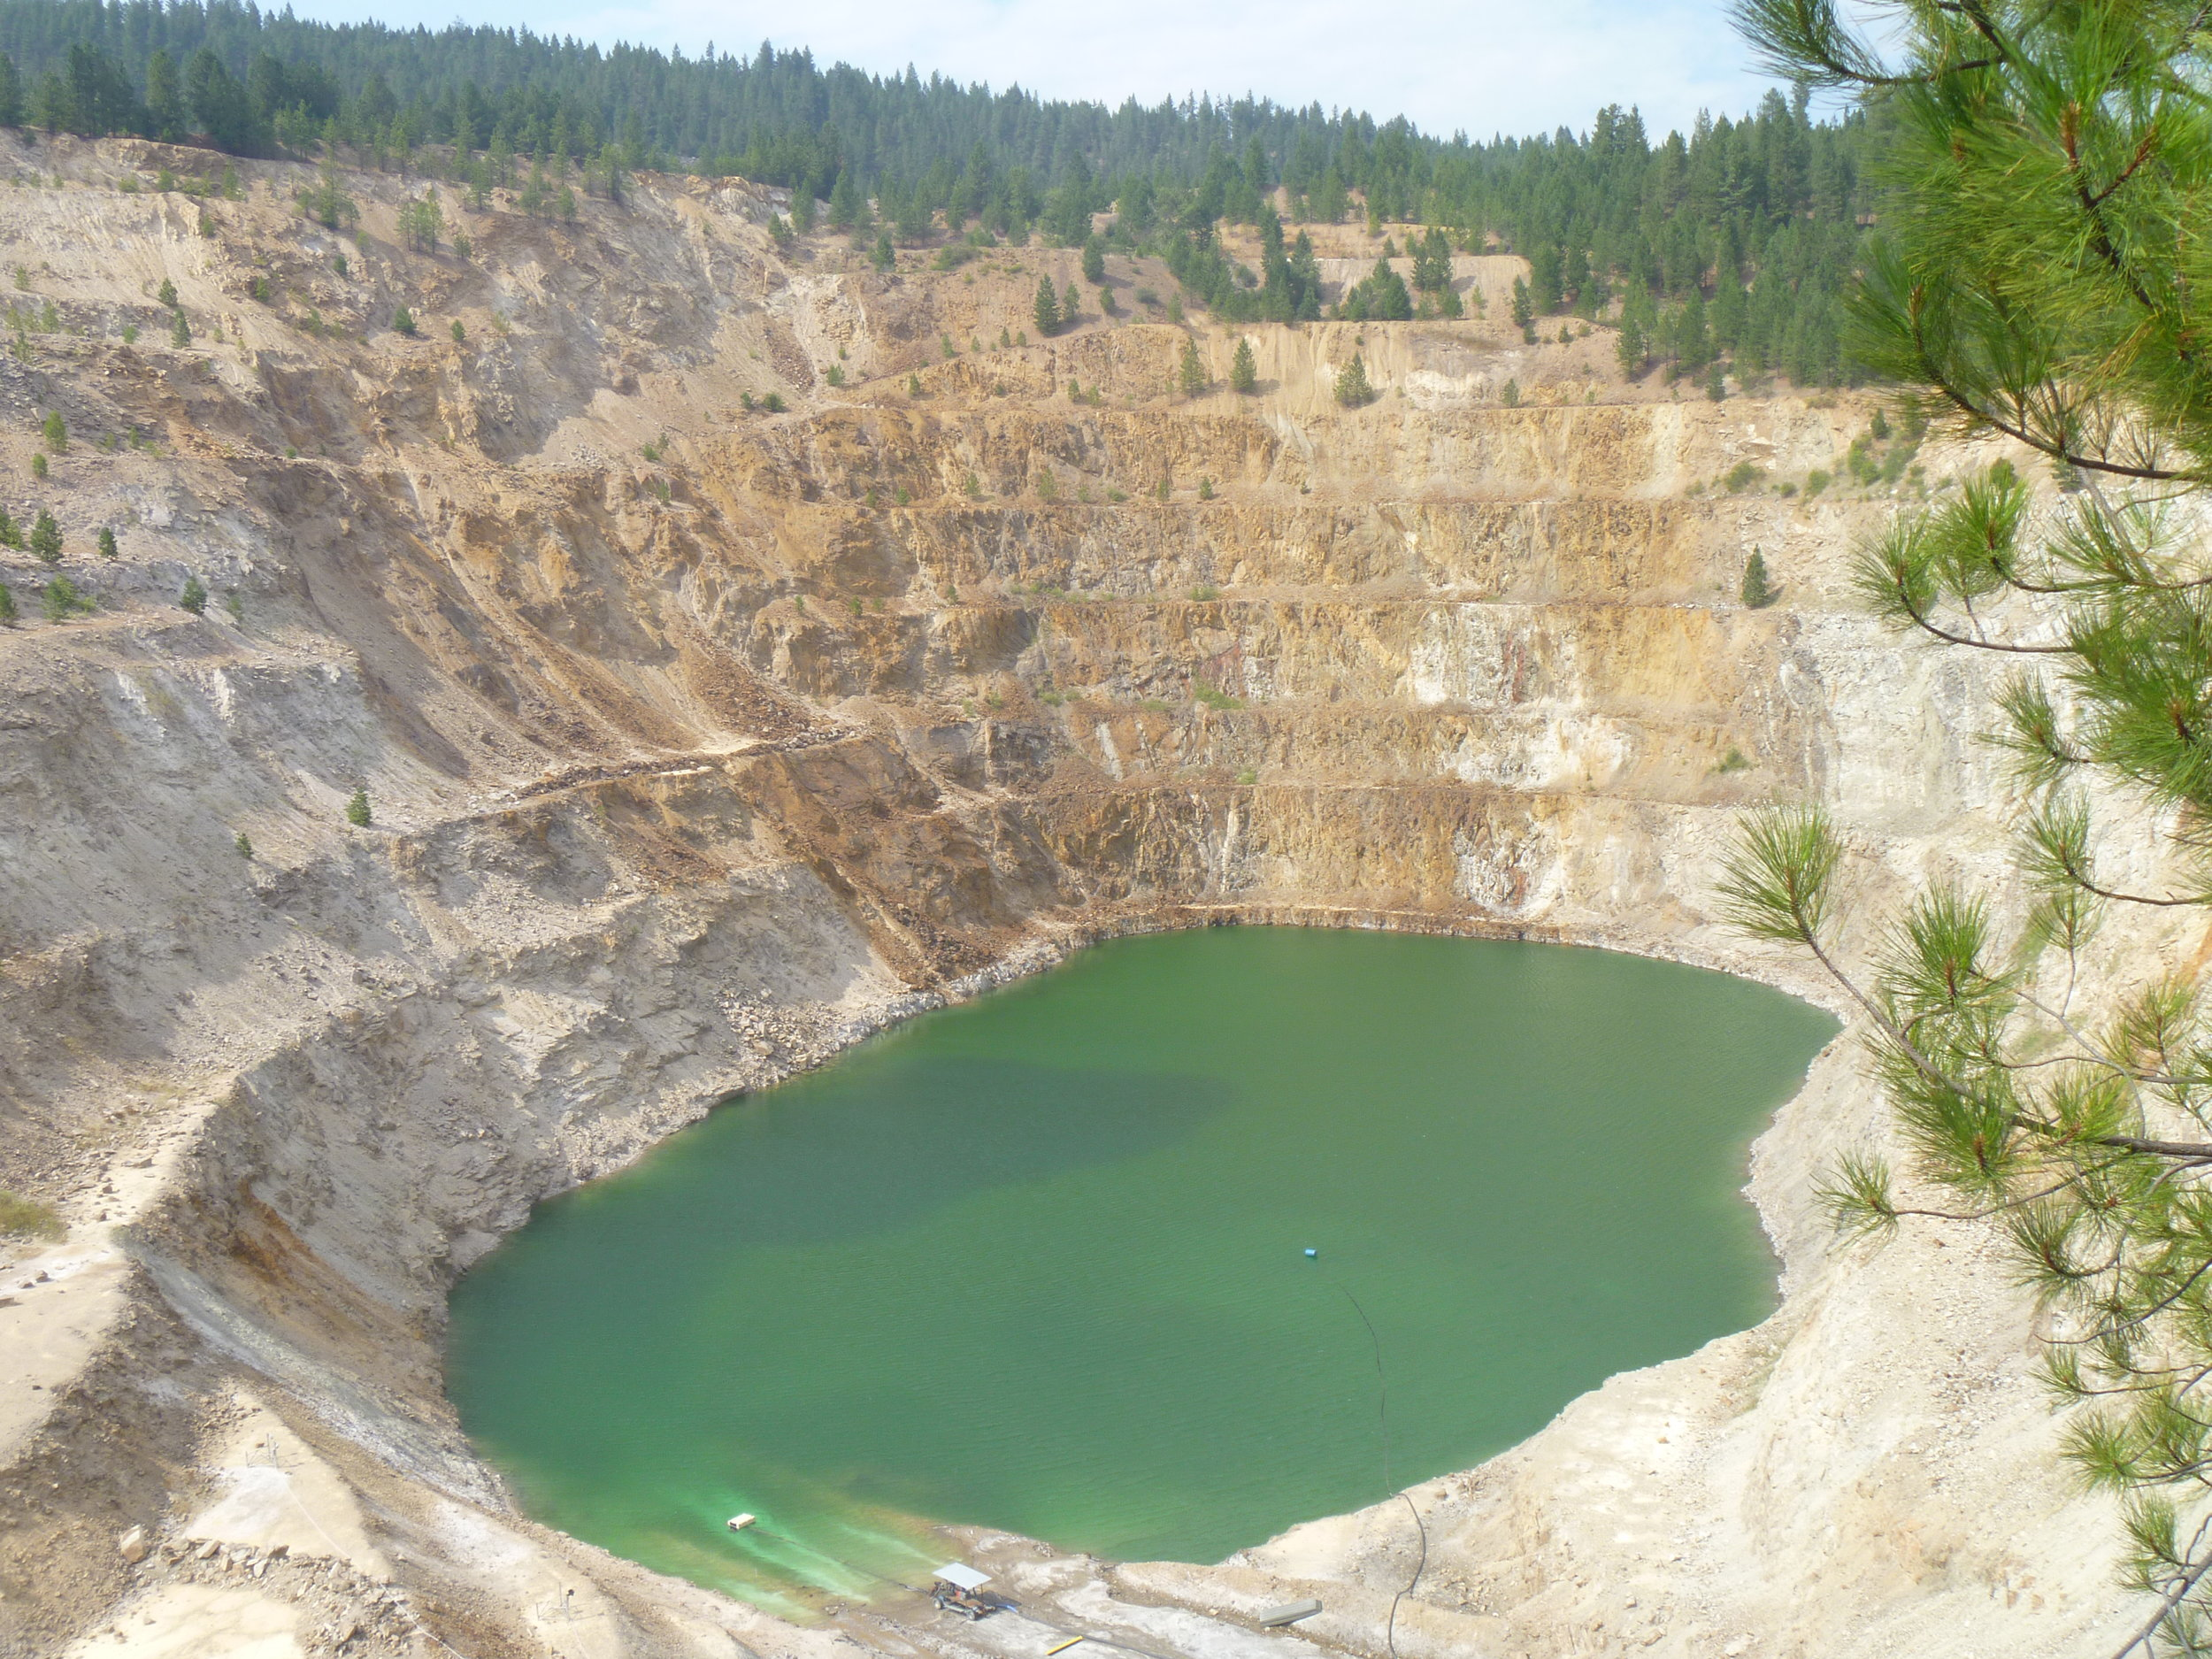 The Midnite Mine (pictured) is a superfund site on the Spokane Indian Reservation consisting of an open bit uranium mine that pollutes nearby waters with Radium-226.